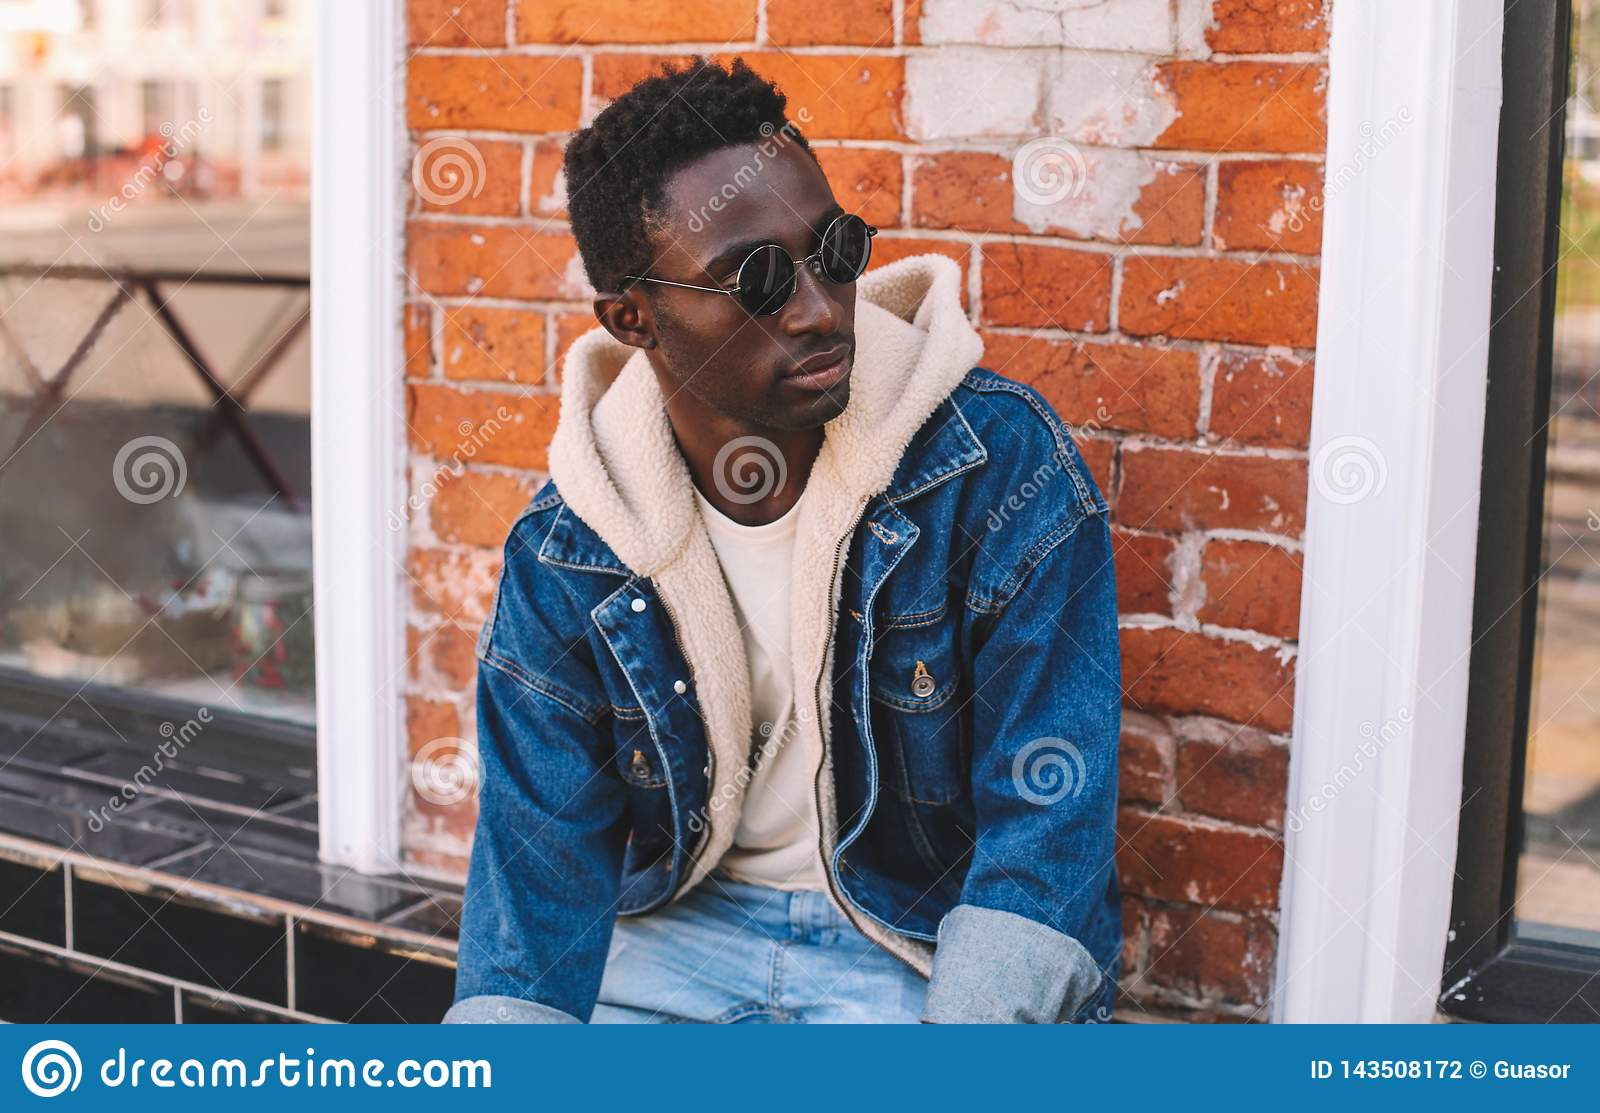 Fashion portrait african man wearing jeans jacket sitting on city street over brick textured wall